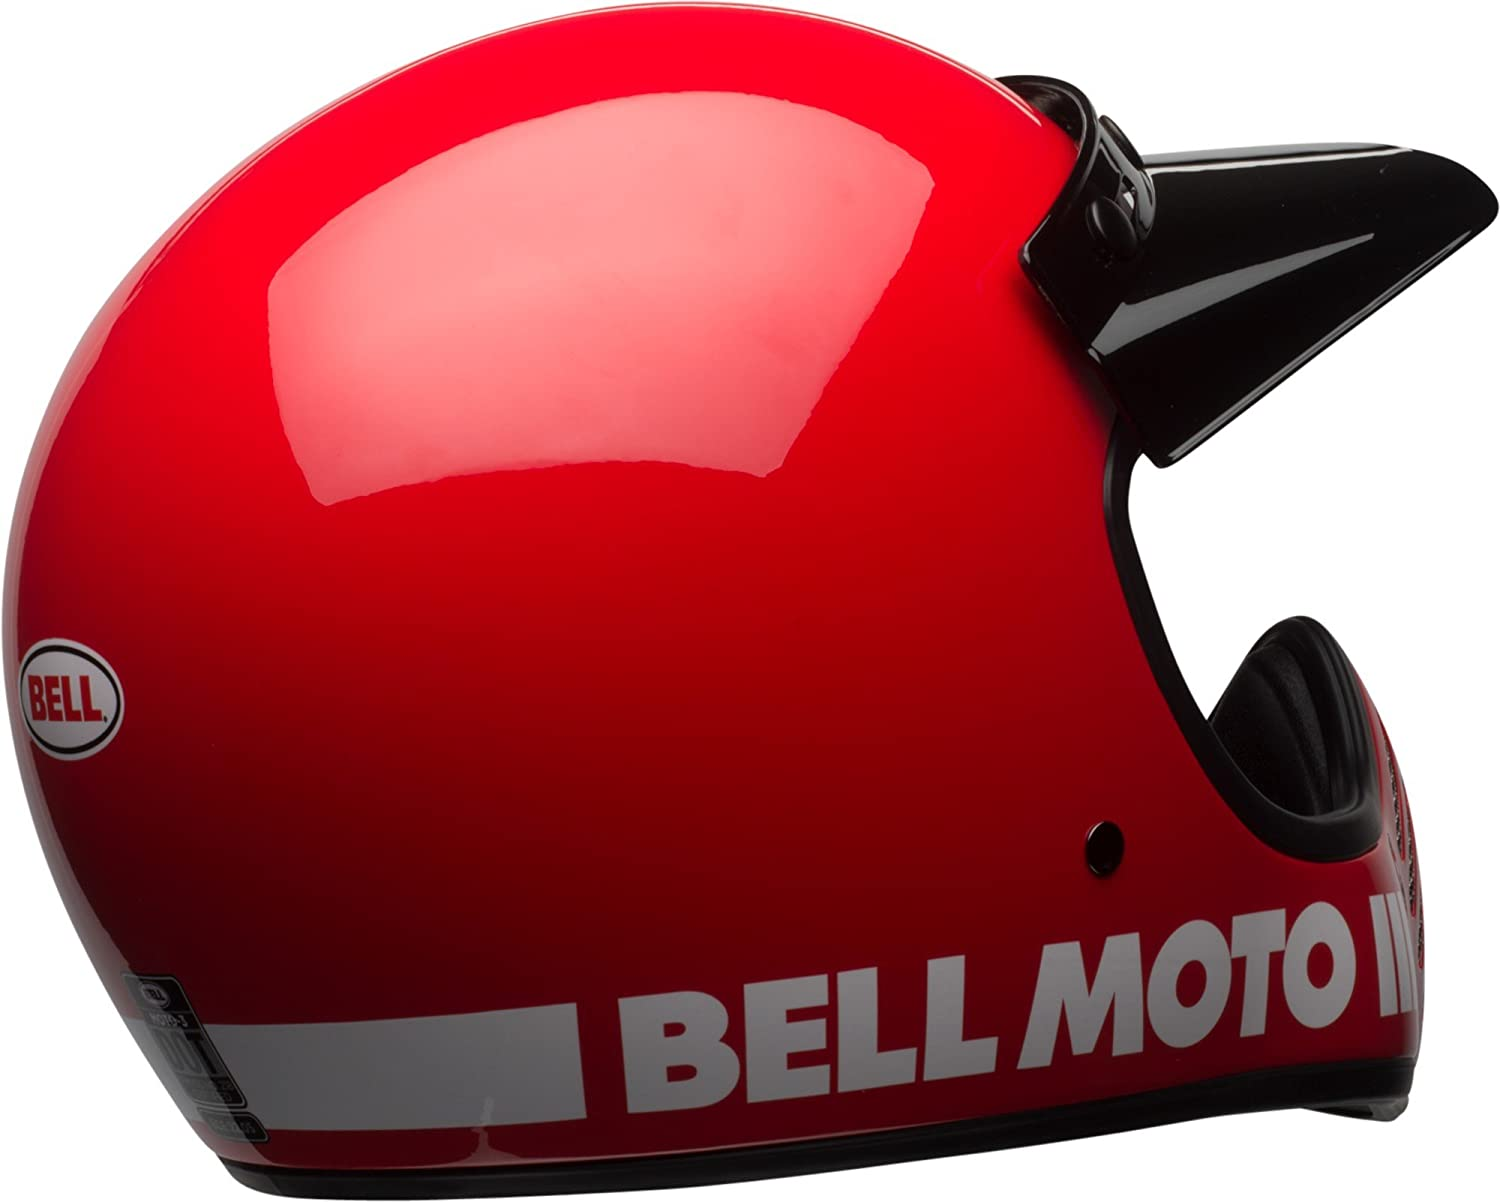 Amazon.com: Bell Moto-3 Off-Road Motorcycle Helmet (Classic Gloss Red, Medium): Automotive